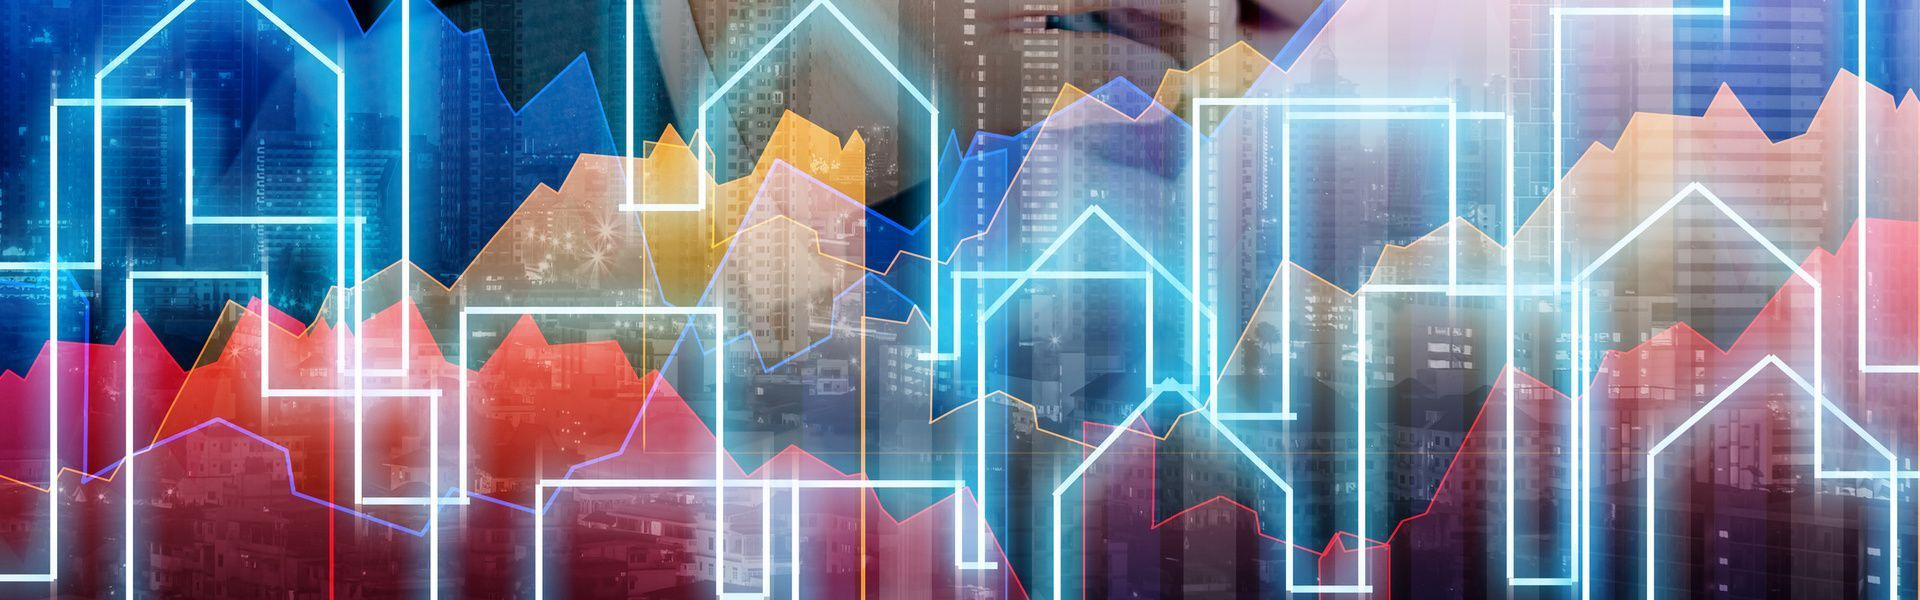 limco audit immobilier et expertise